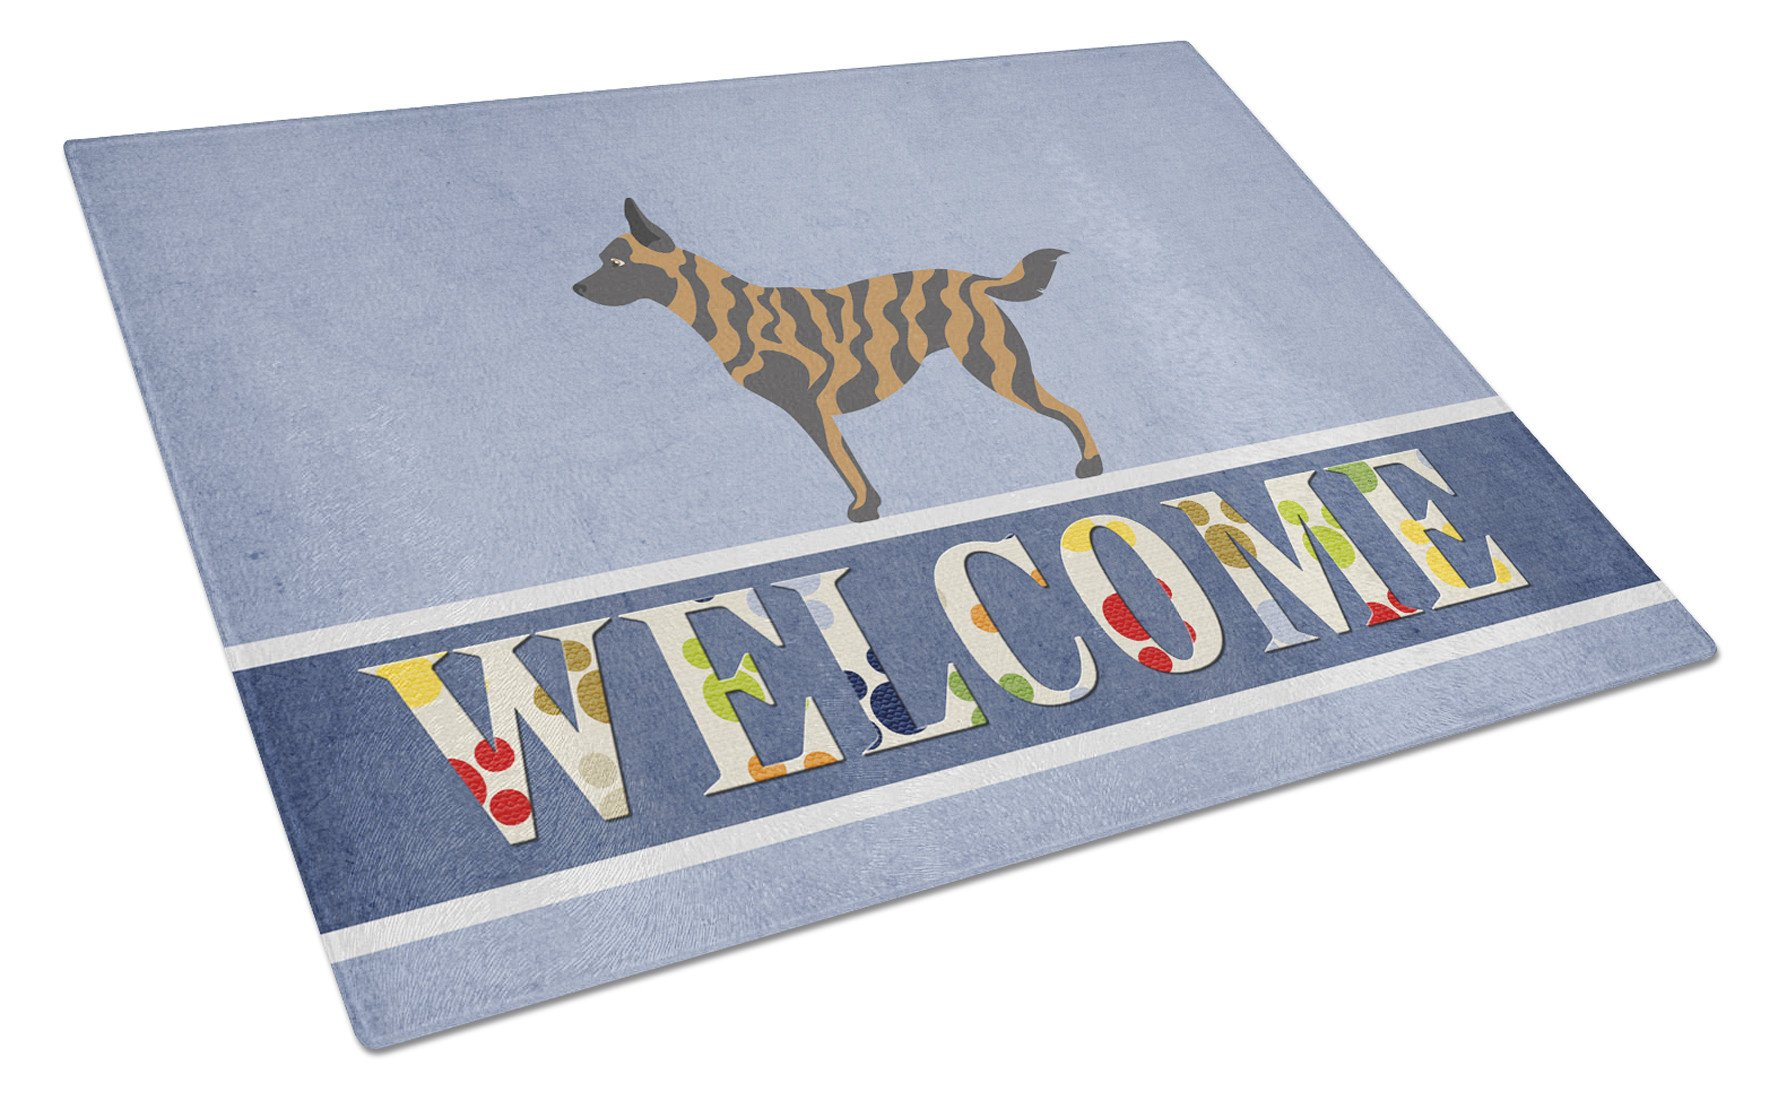 Dutch Shepherd Welcome Glass Cutting Board Large BB8300LCB by Caroline's Treasures